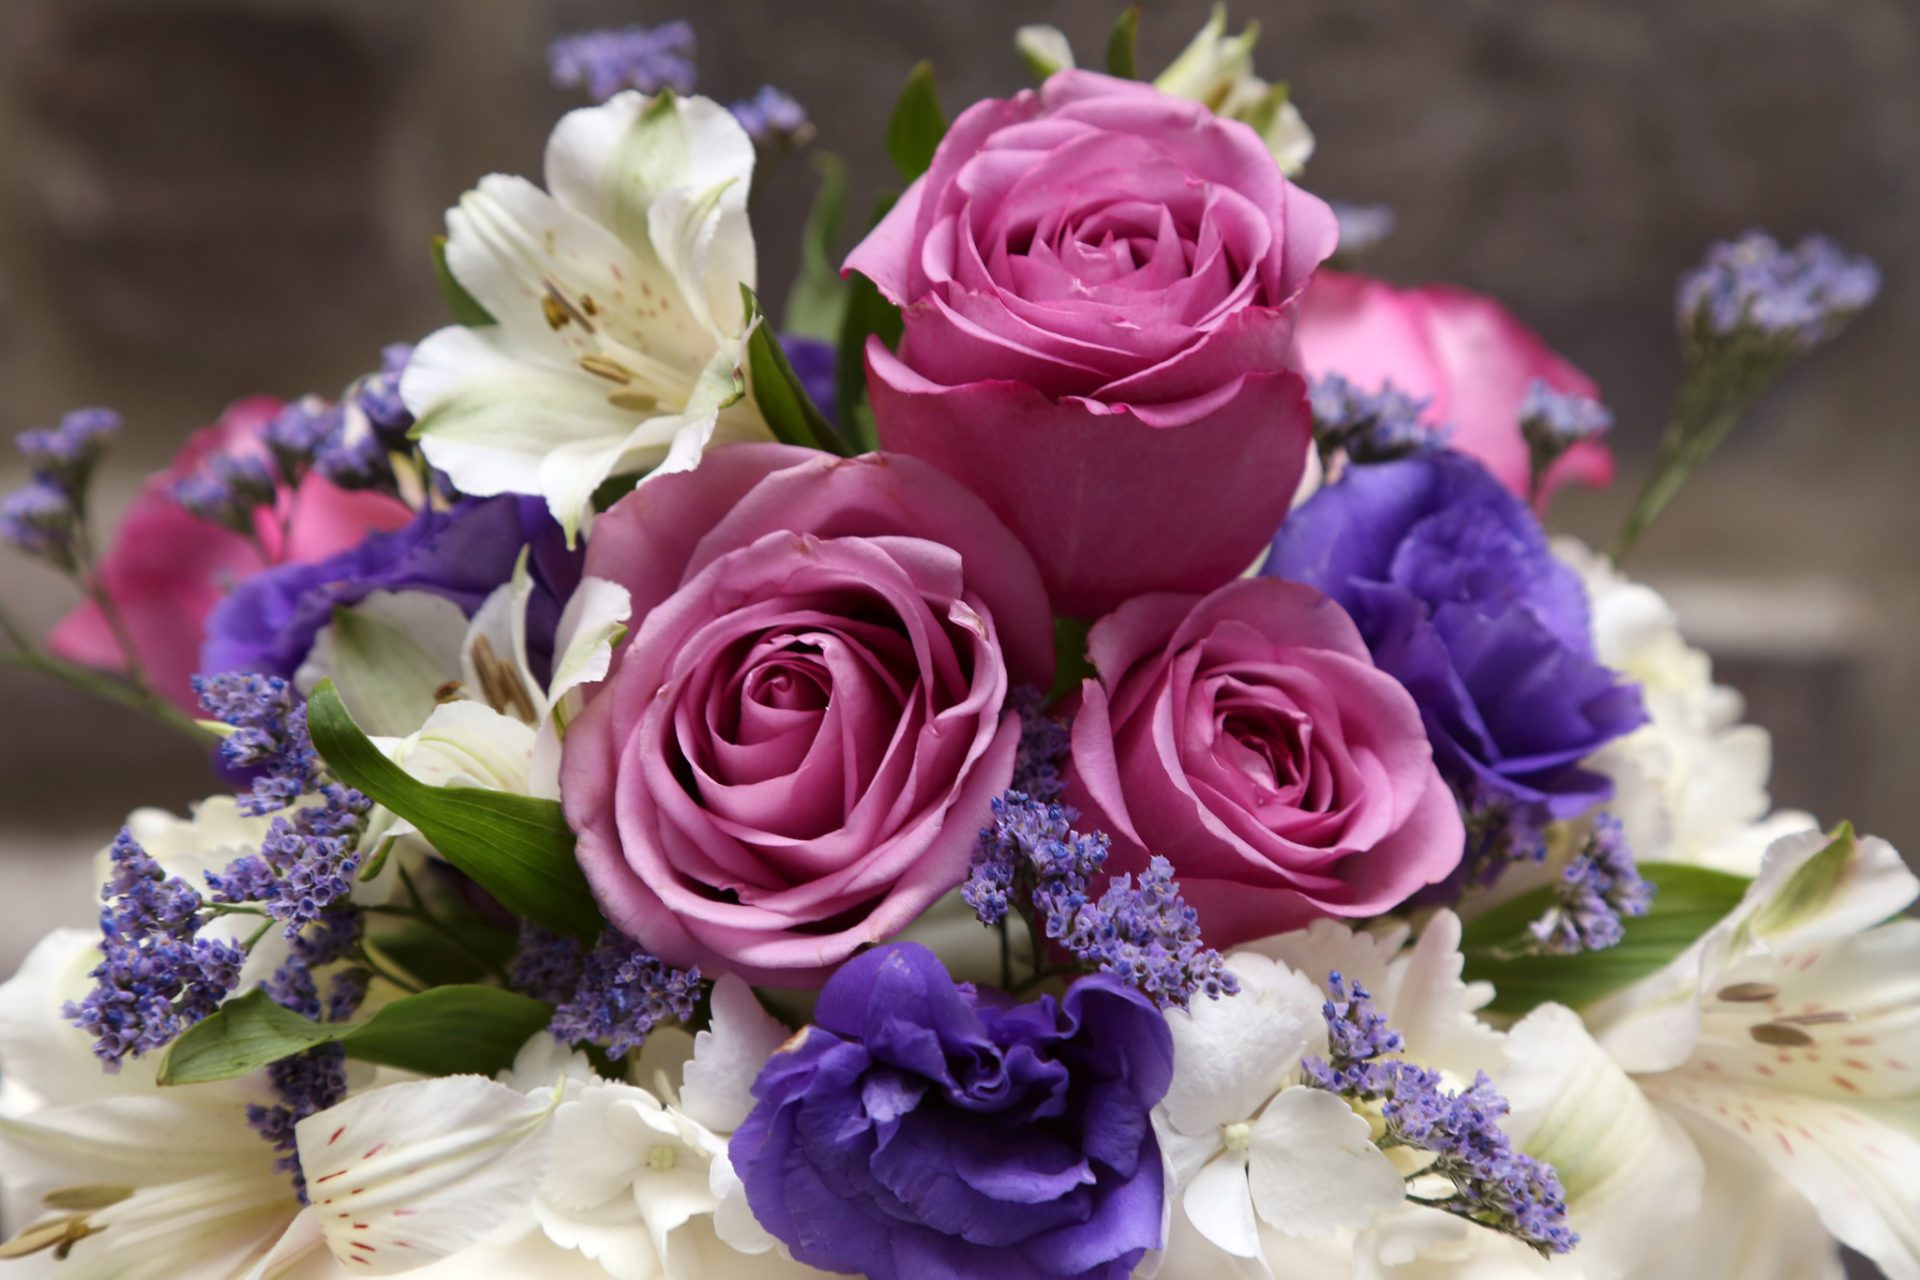 Close up of pink and purple roses used in summer wedding floral arrangement.